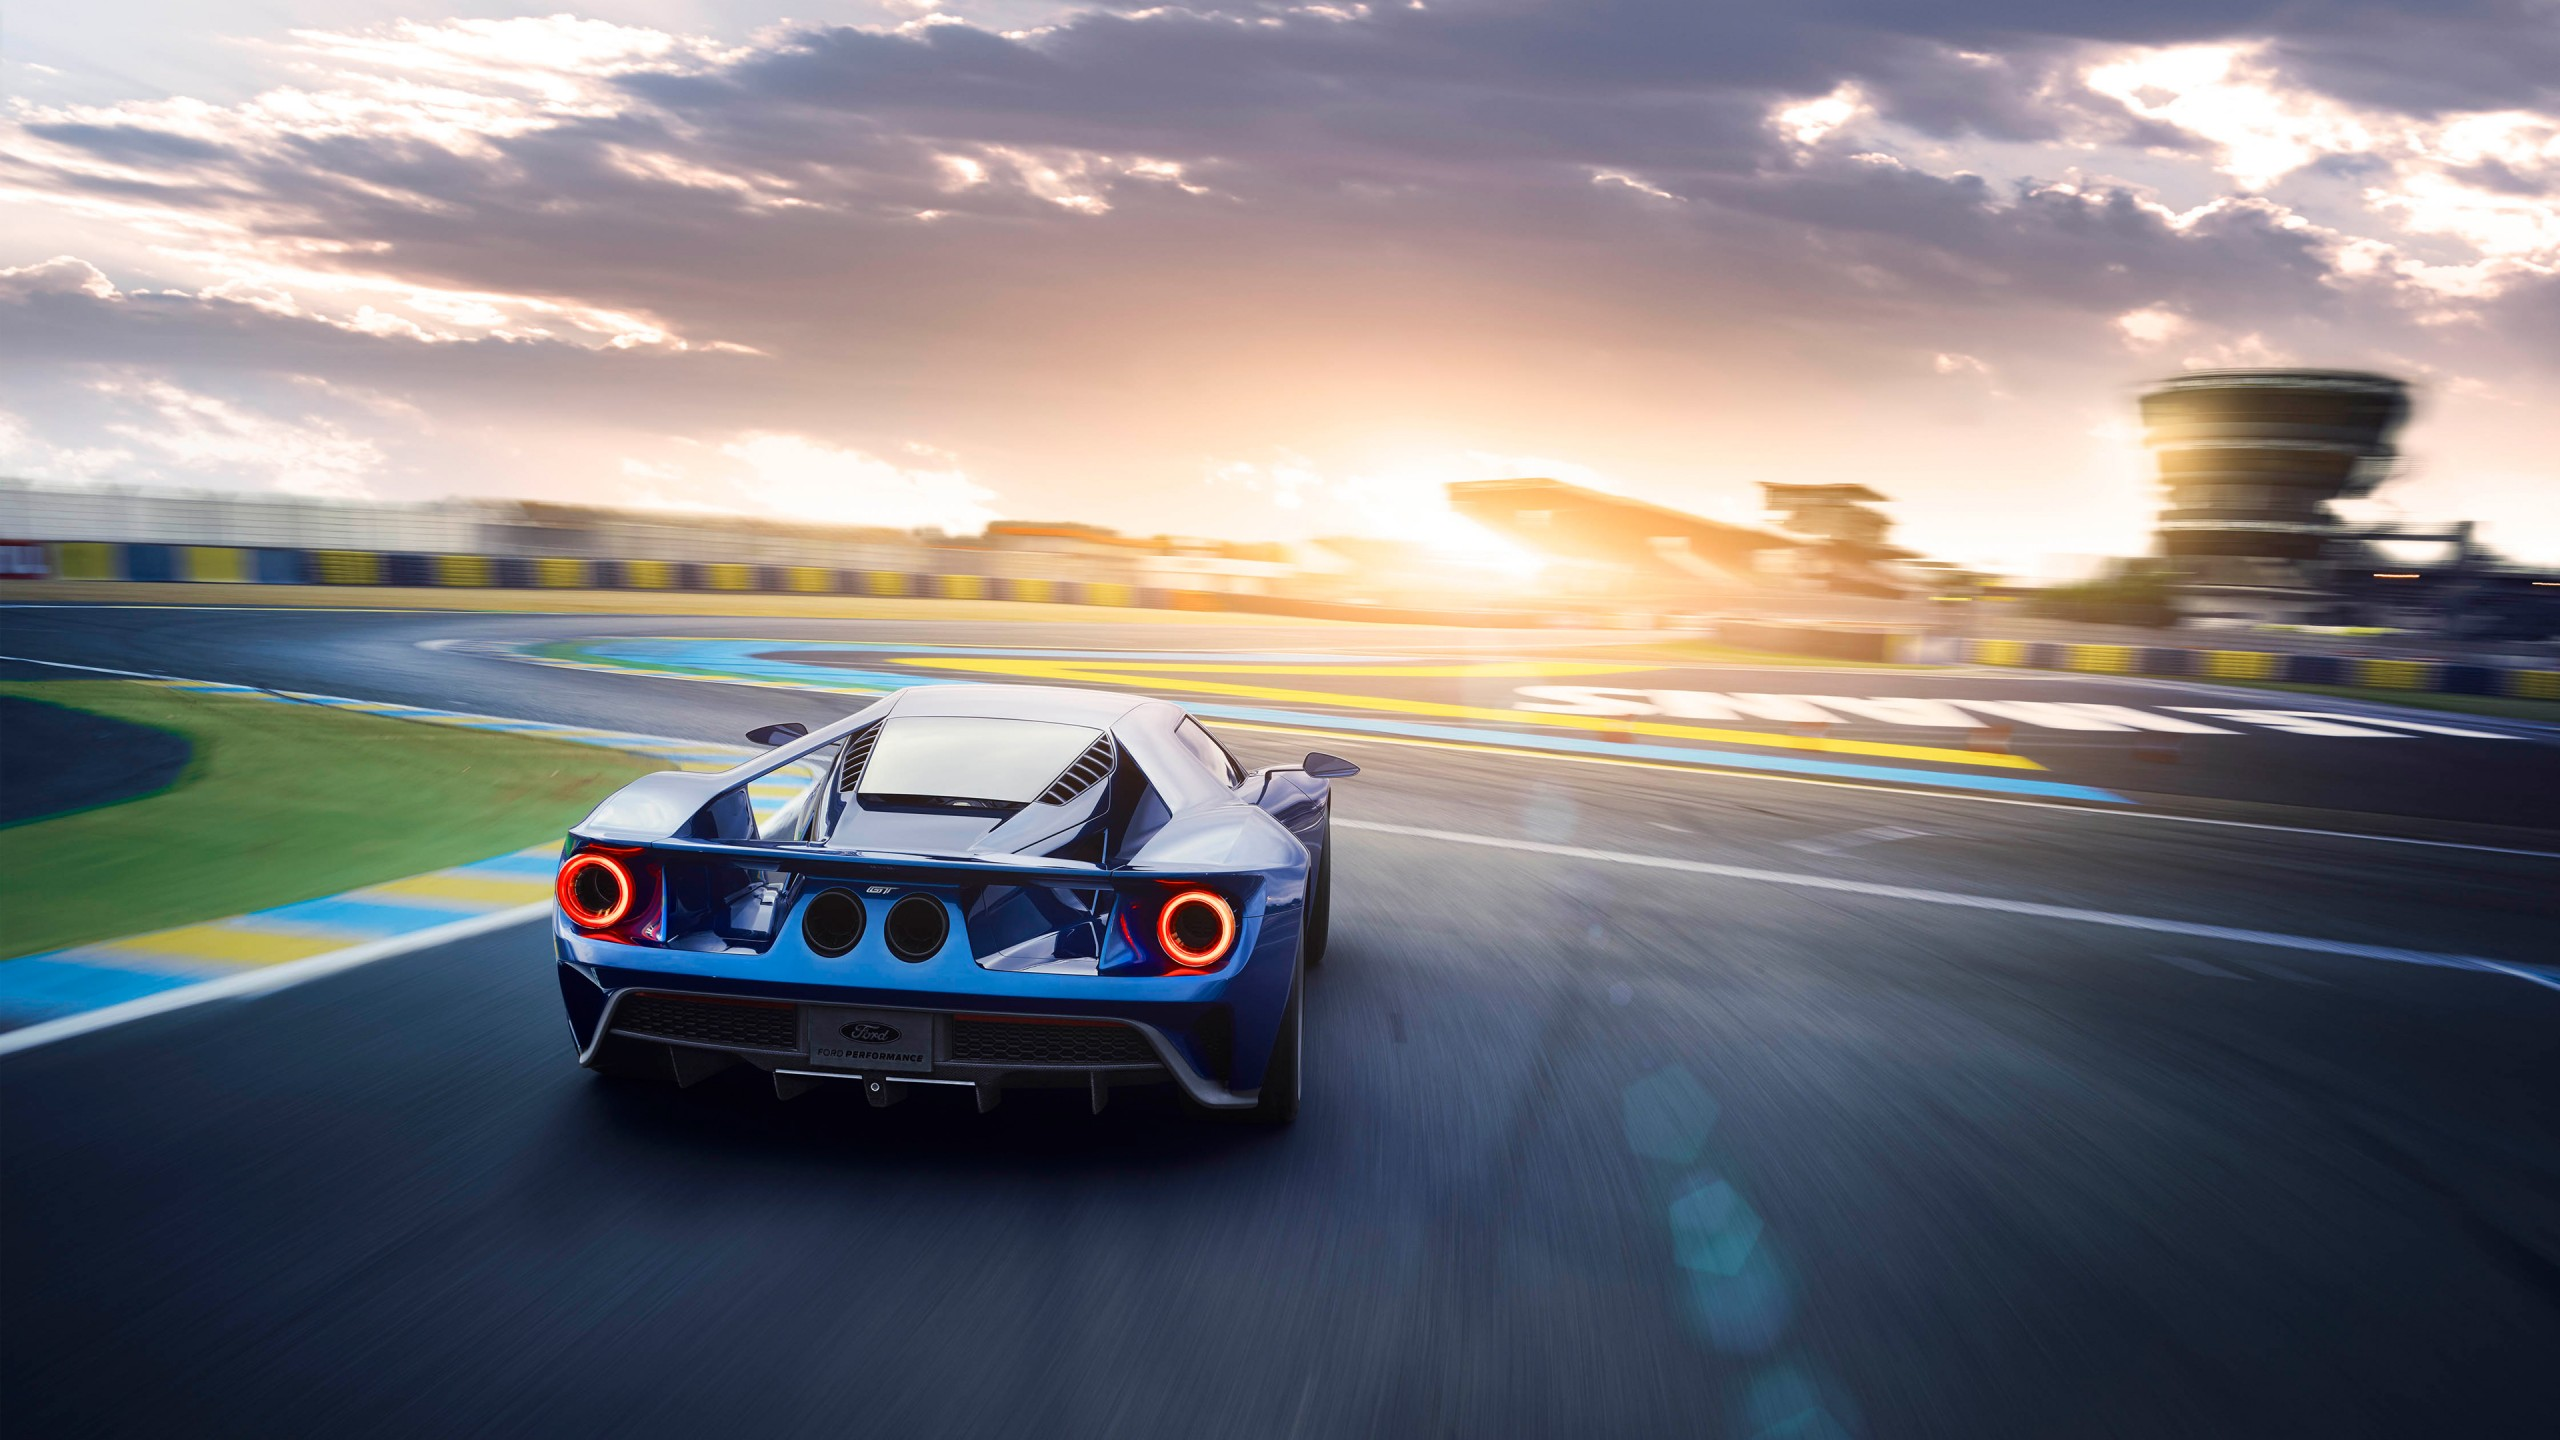 2017 ford gt hd - photo #6